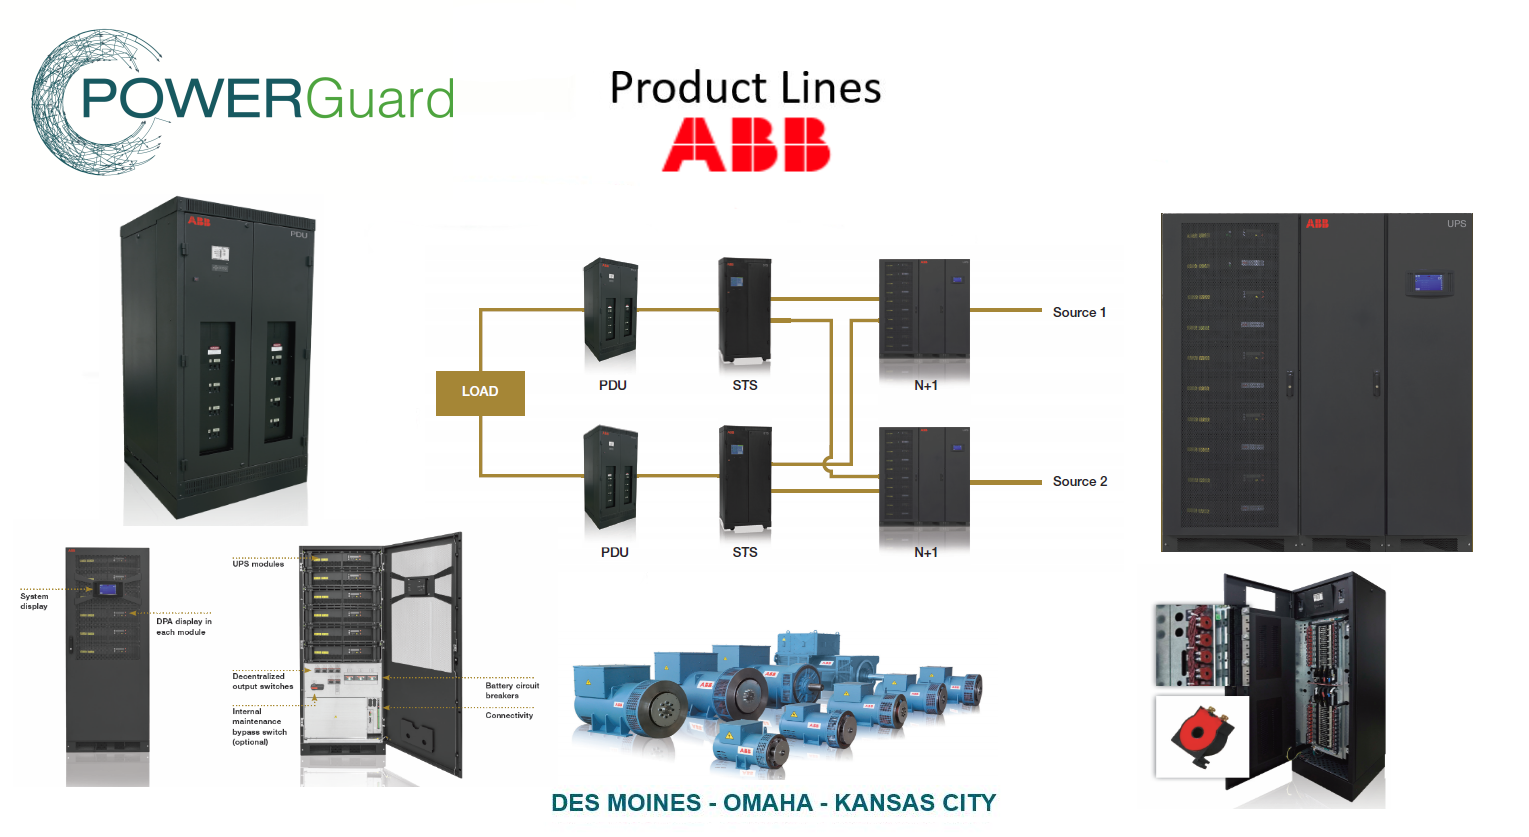 News Apc Battery Backup Wiring Diagram View Our Products Tab For More Information On Specific Ups Vendors